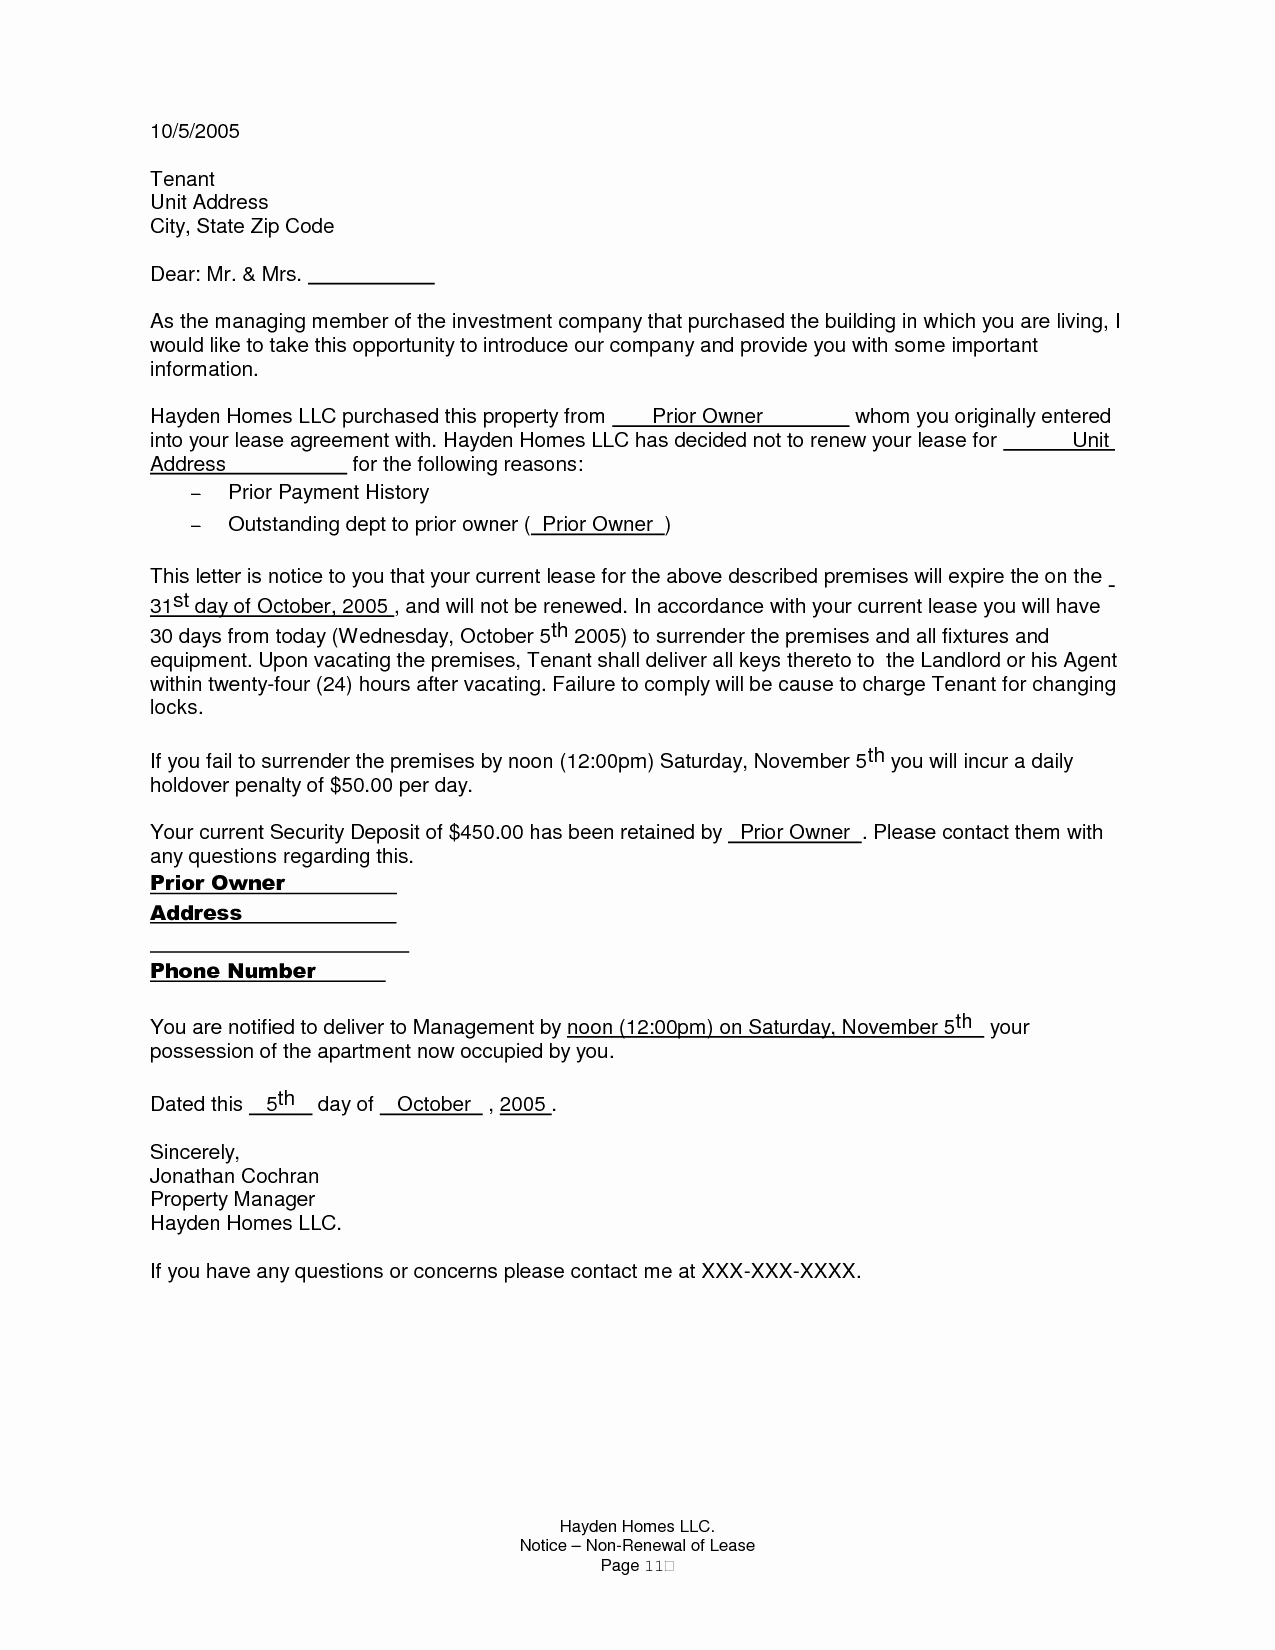 Lease Renewal Notice to Tenant Beautiful Renewal Notice Letter Sample